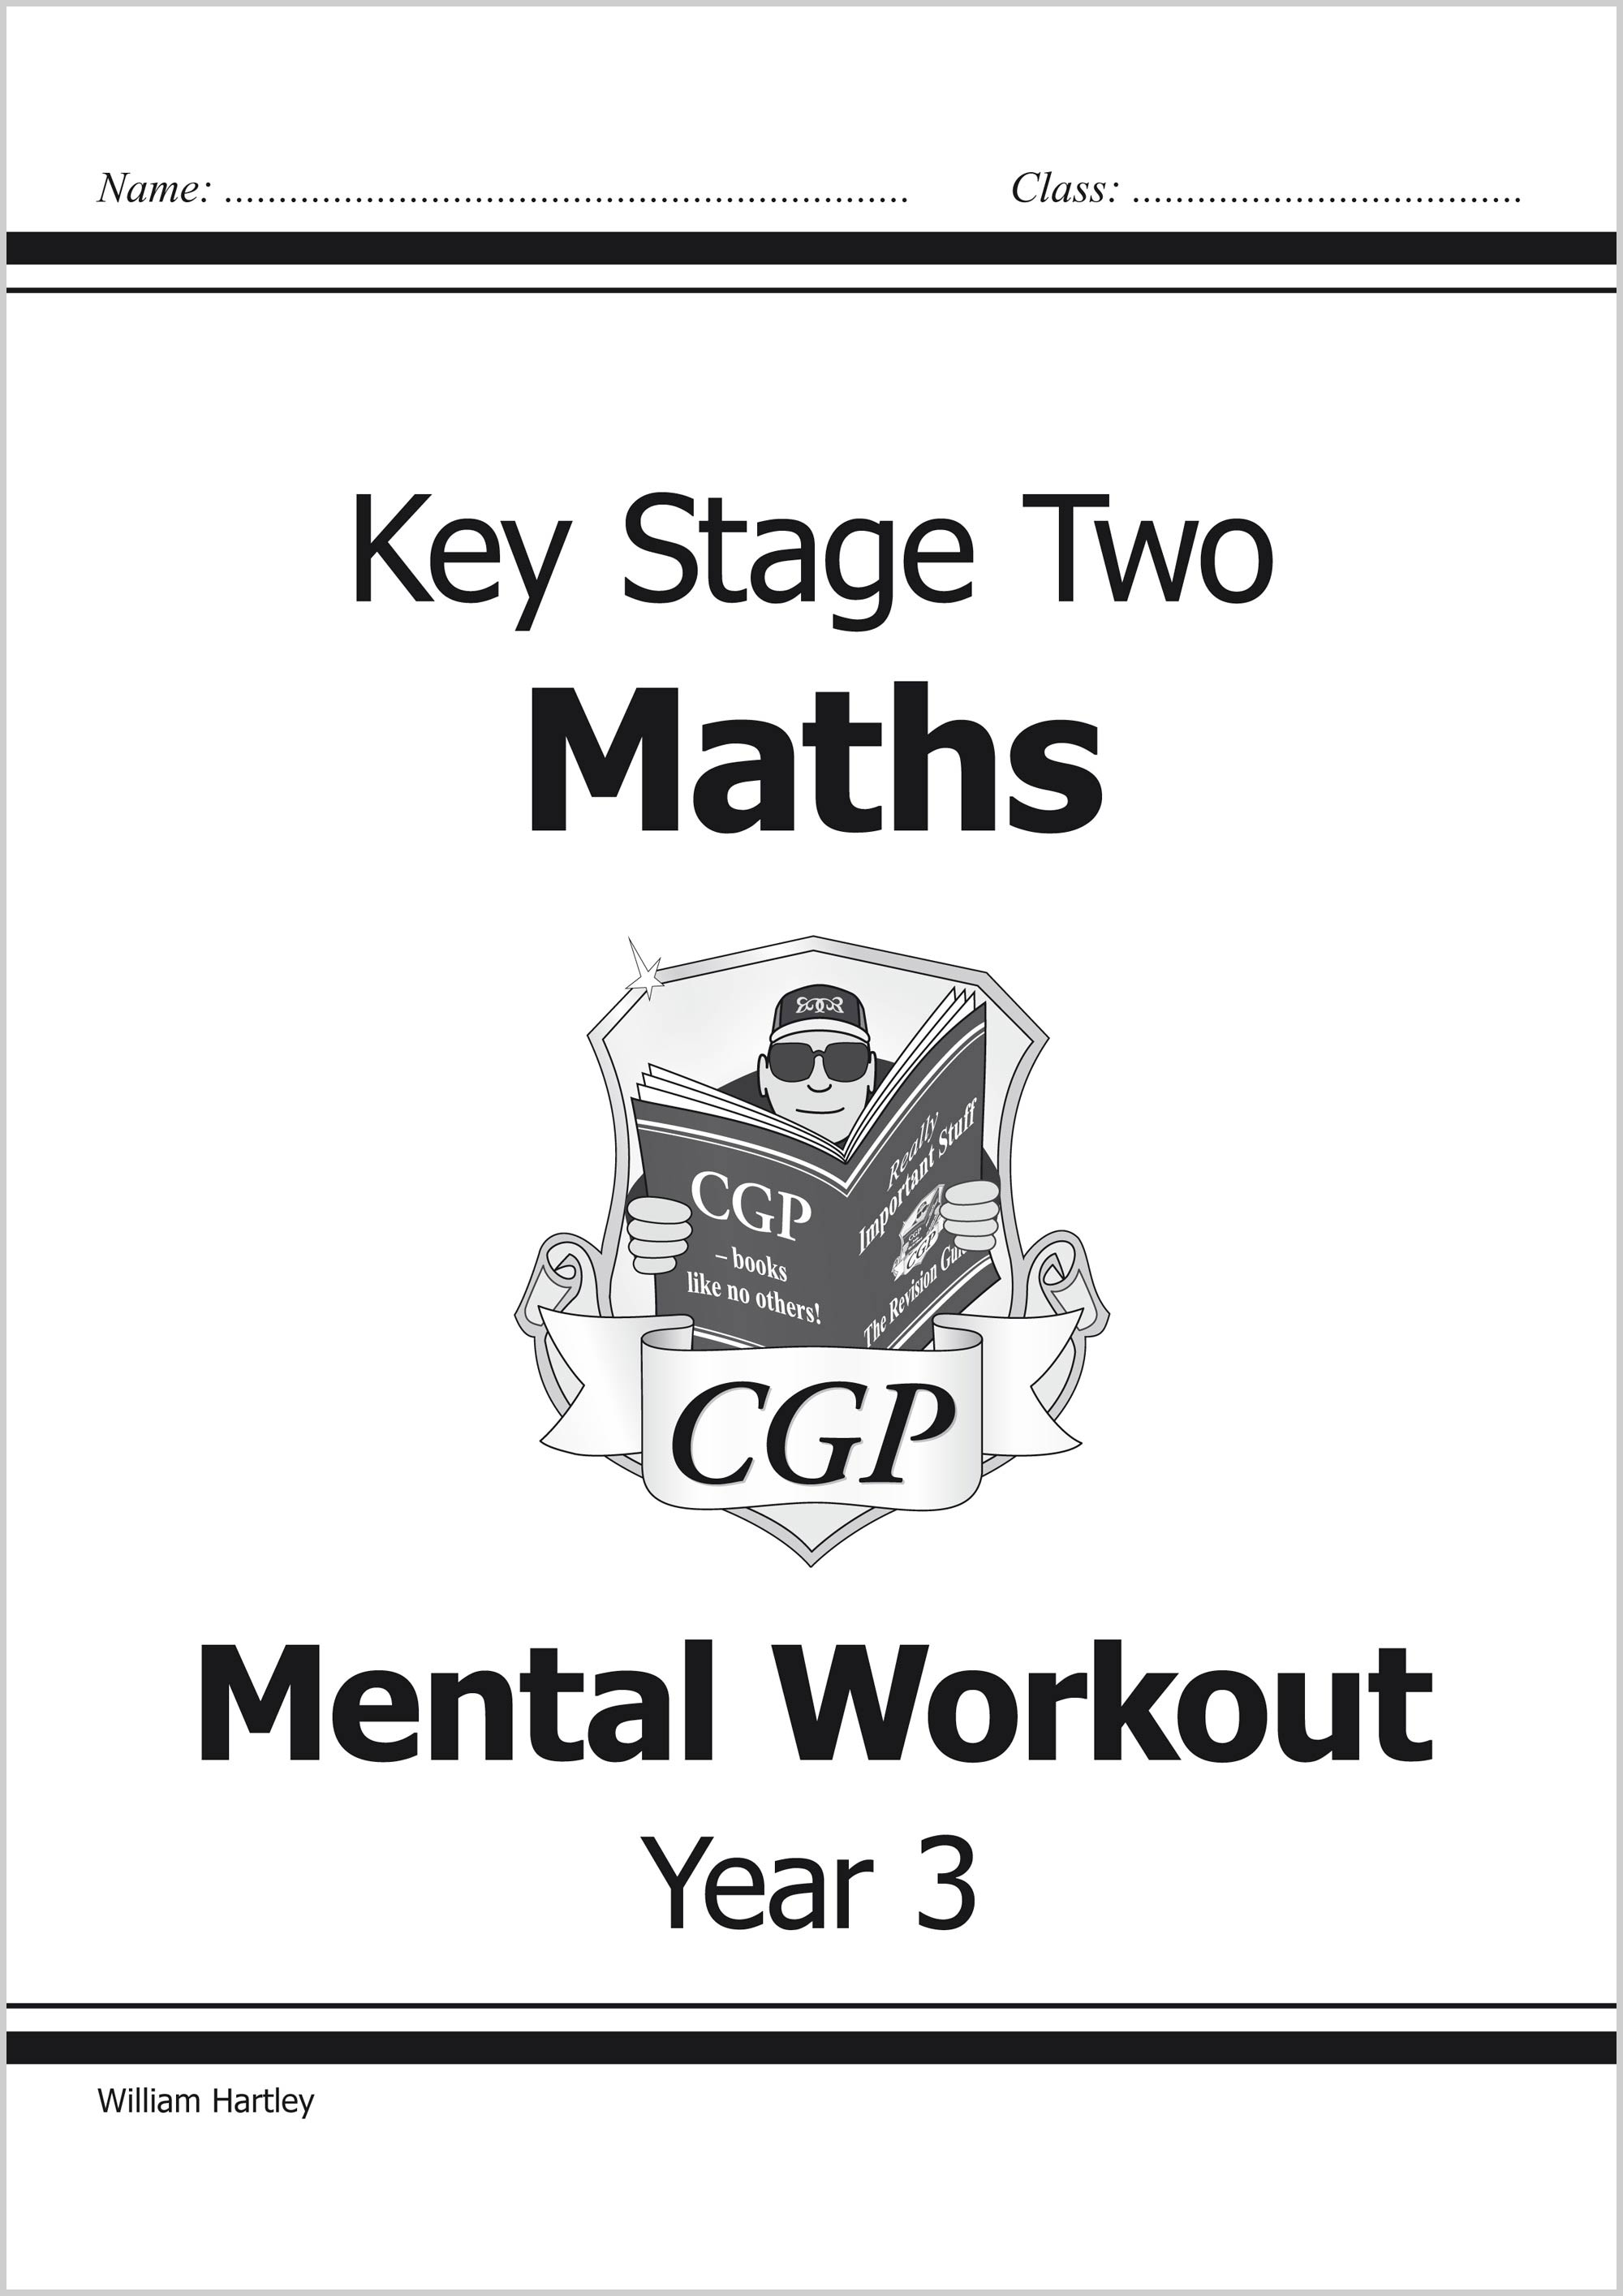 M3MA22 - KS2 Mental Maths Workout - Year 3